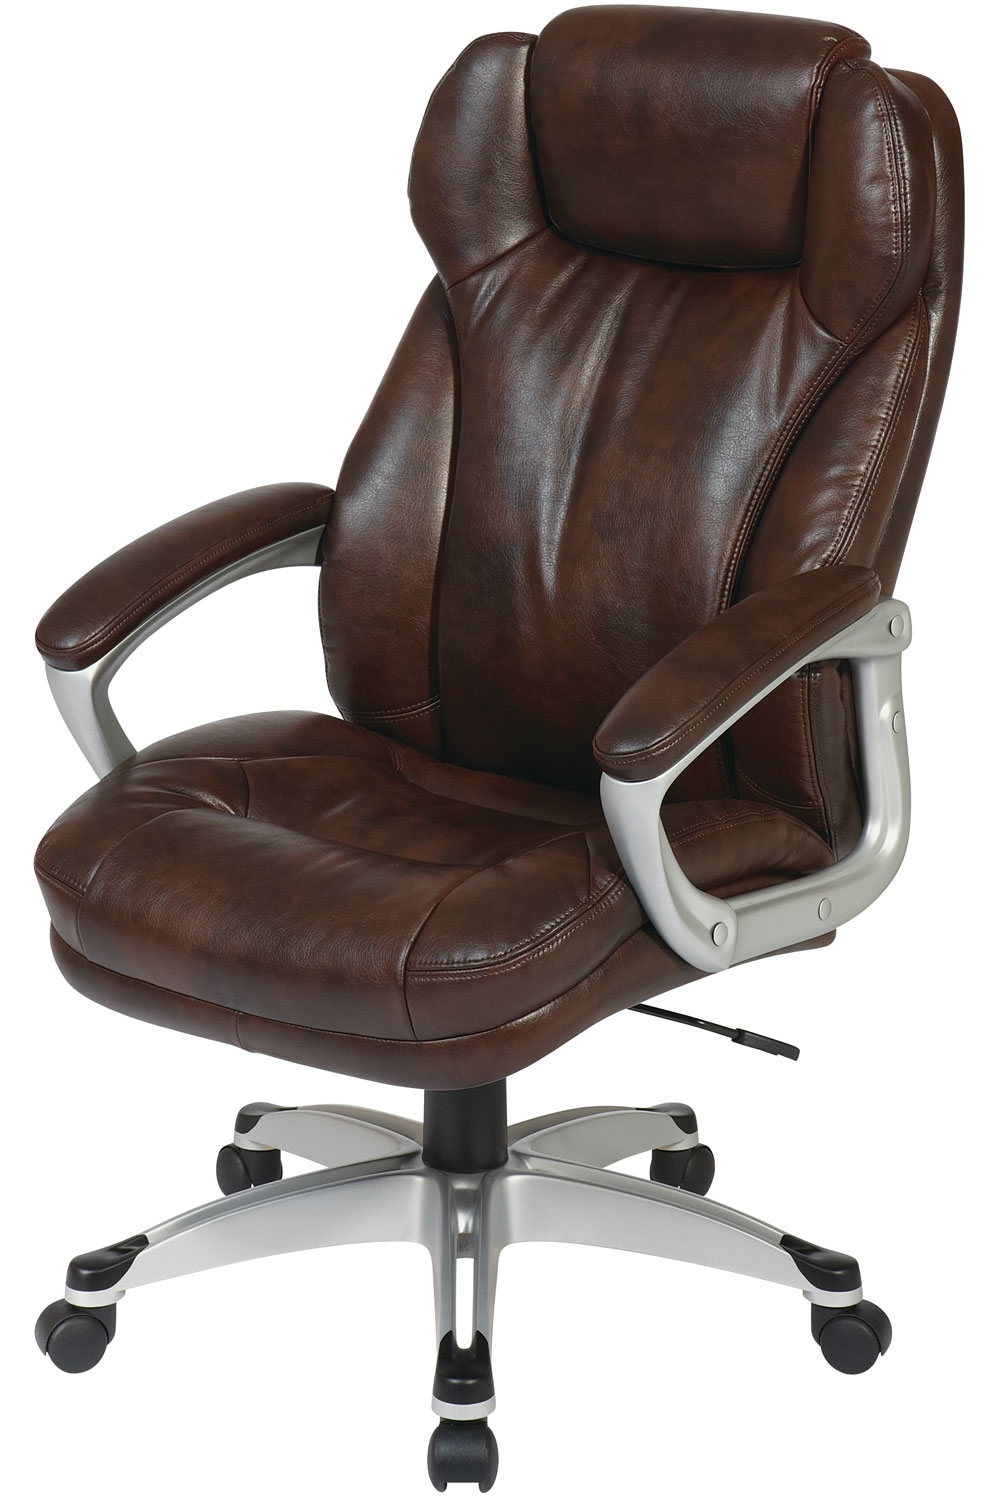 Famous Executive Office Chairs With Headrest With Ech85801 Ec1 Office Star – Executive Cocoa Eco Leather Chair With (View 3 of 20)